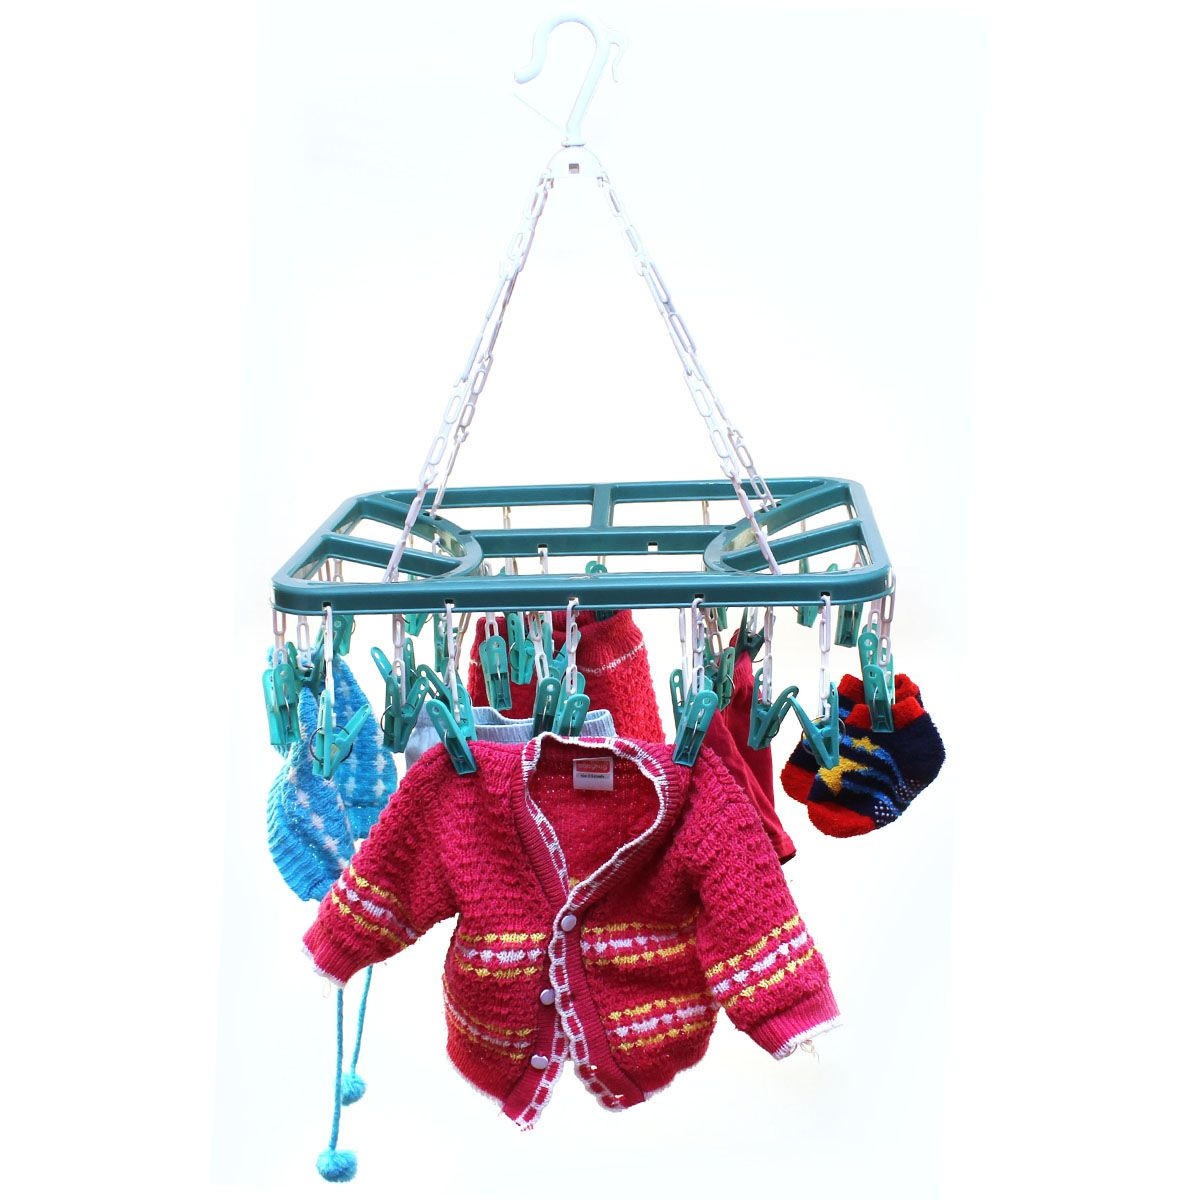 Tnc 32 Clip Laundry Clothesline Hanging Rack For Drying Clothing